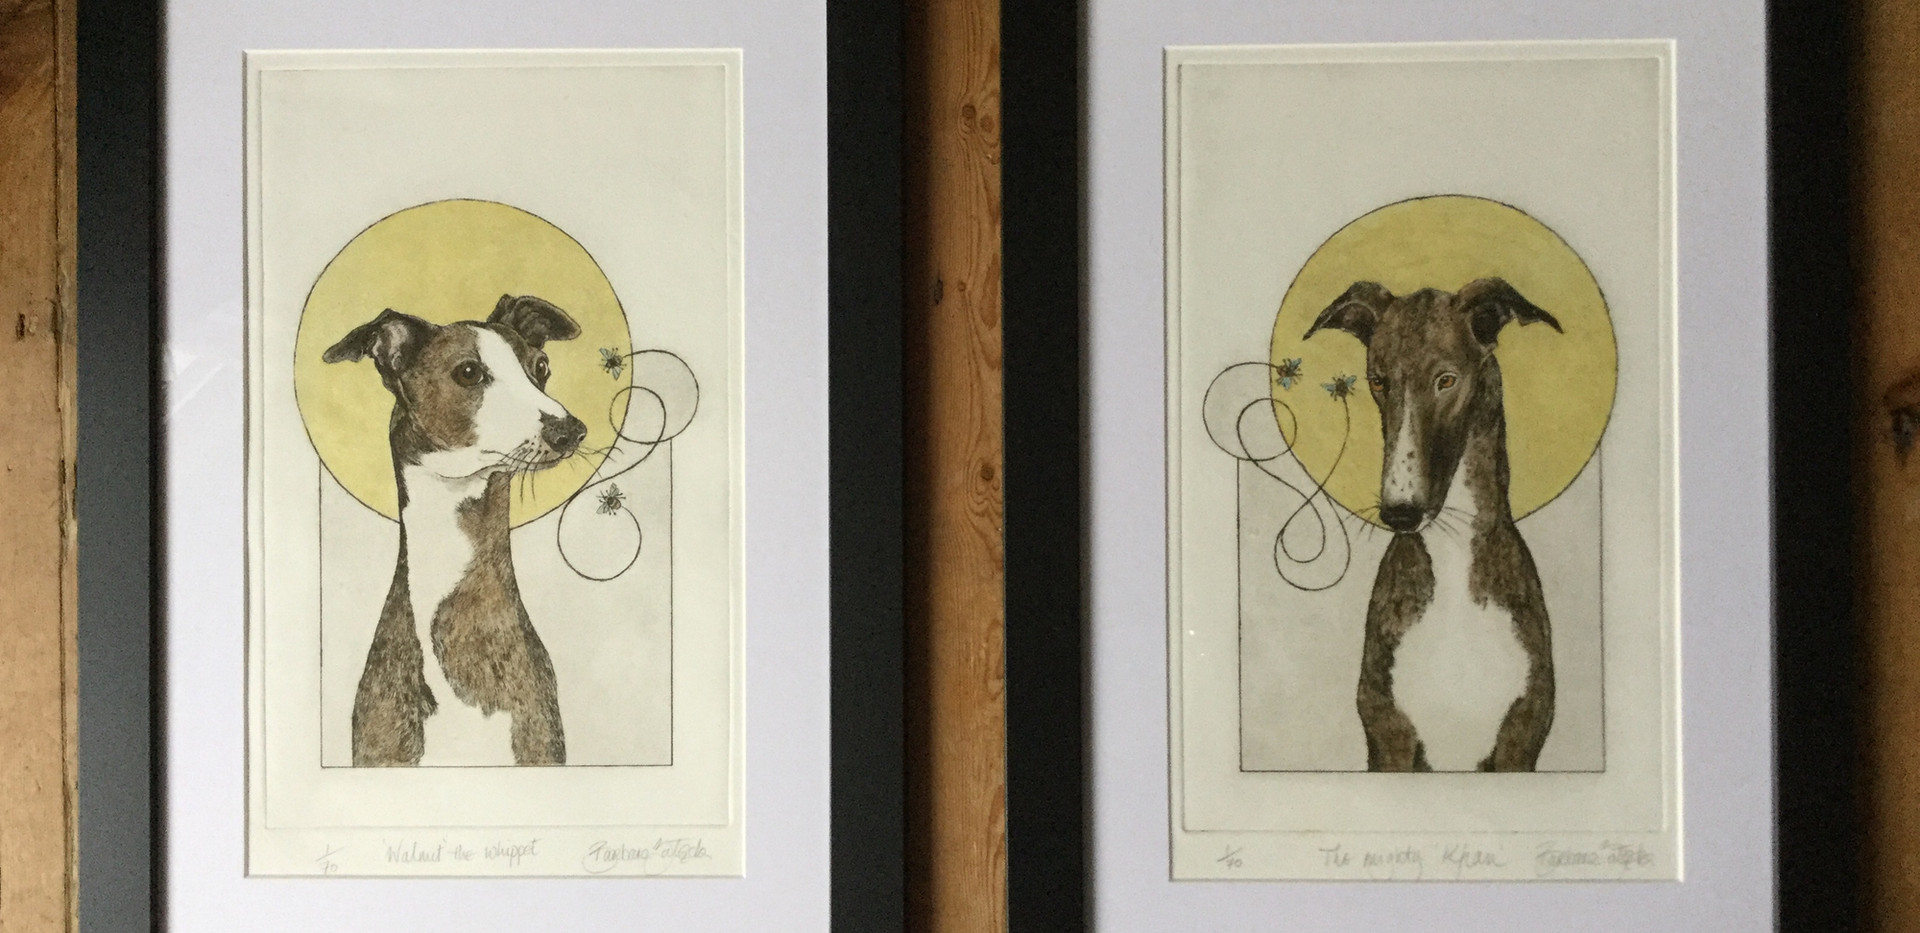 Walnut the whippet and The mighty Khan £140 each